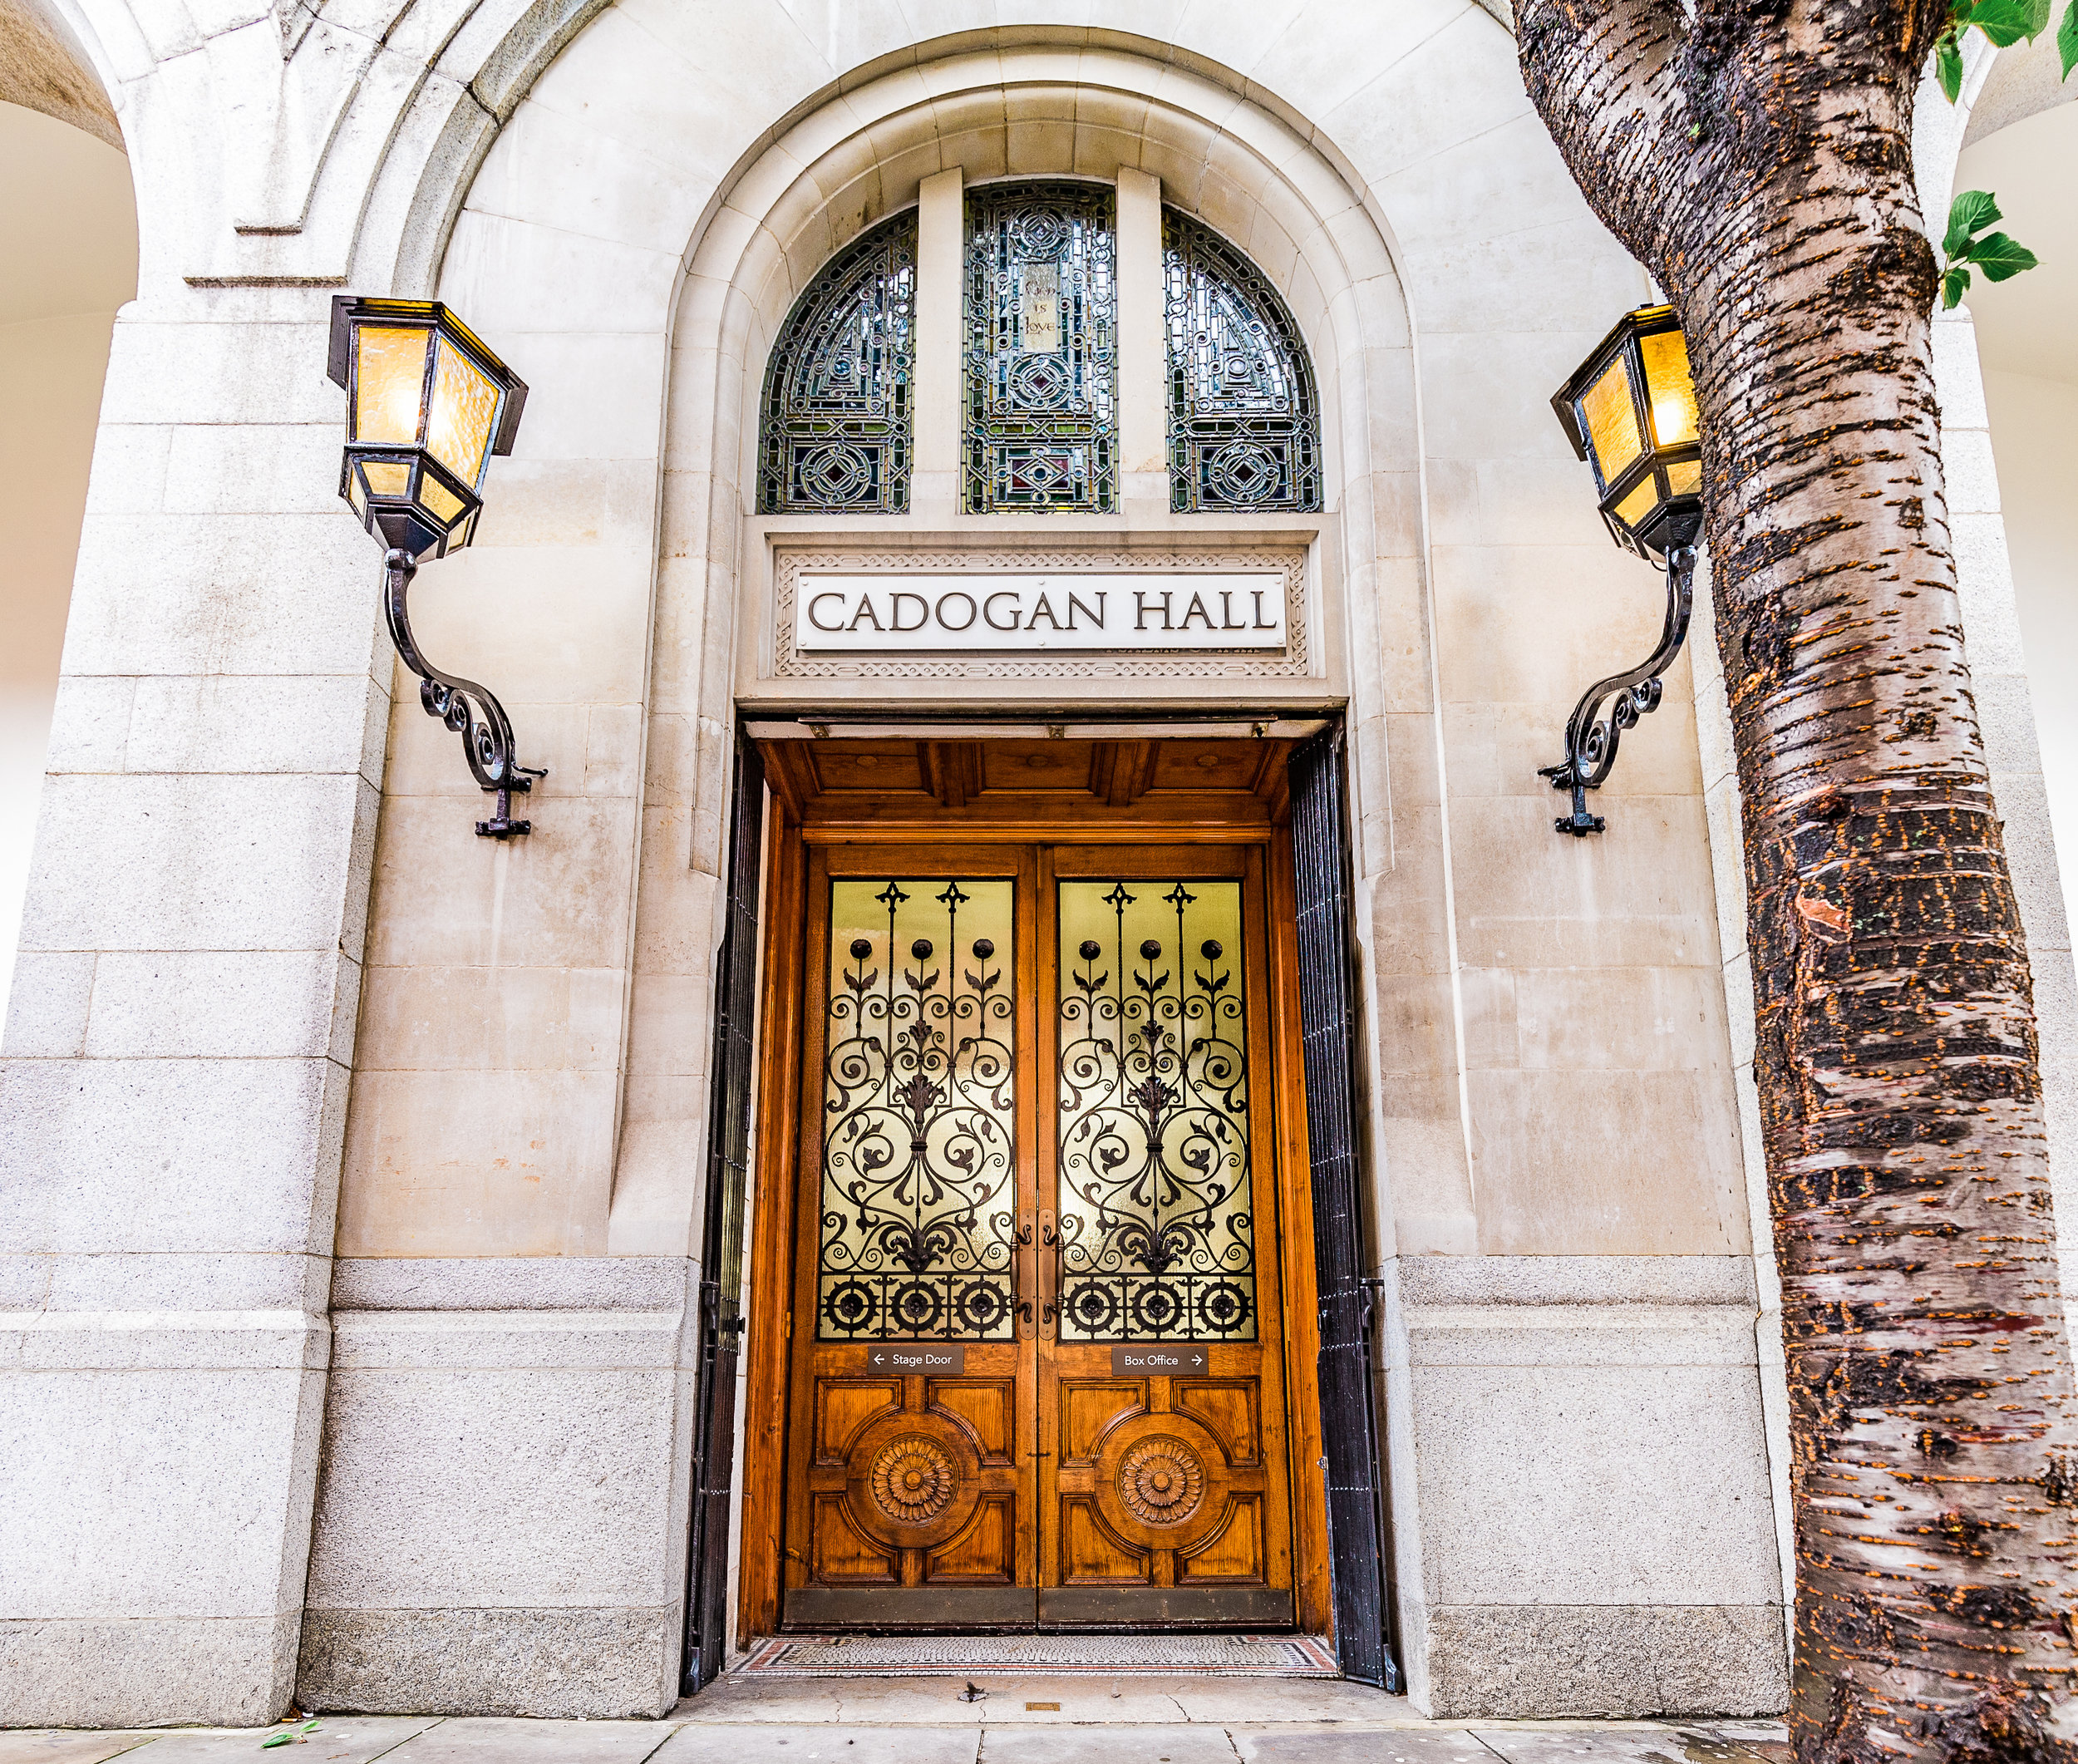 cadogan-hall-general-exterior_24689279078_o.jpg